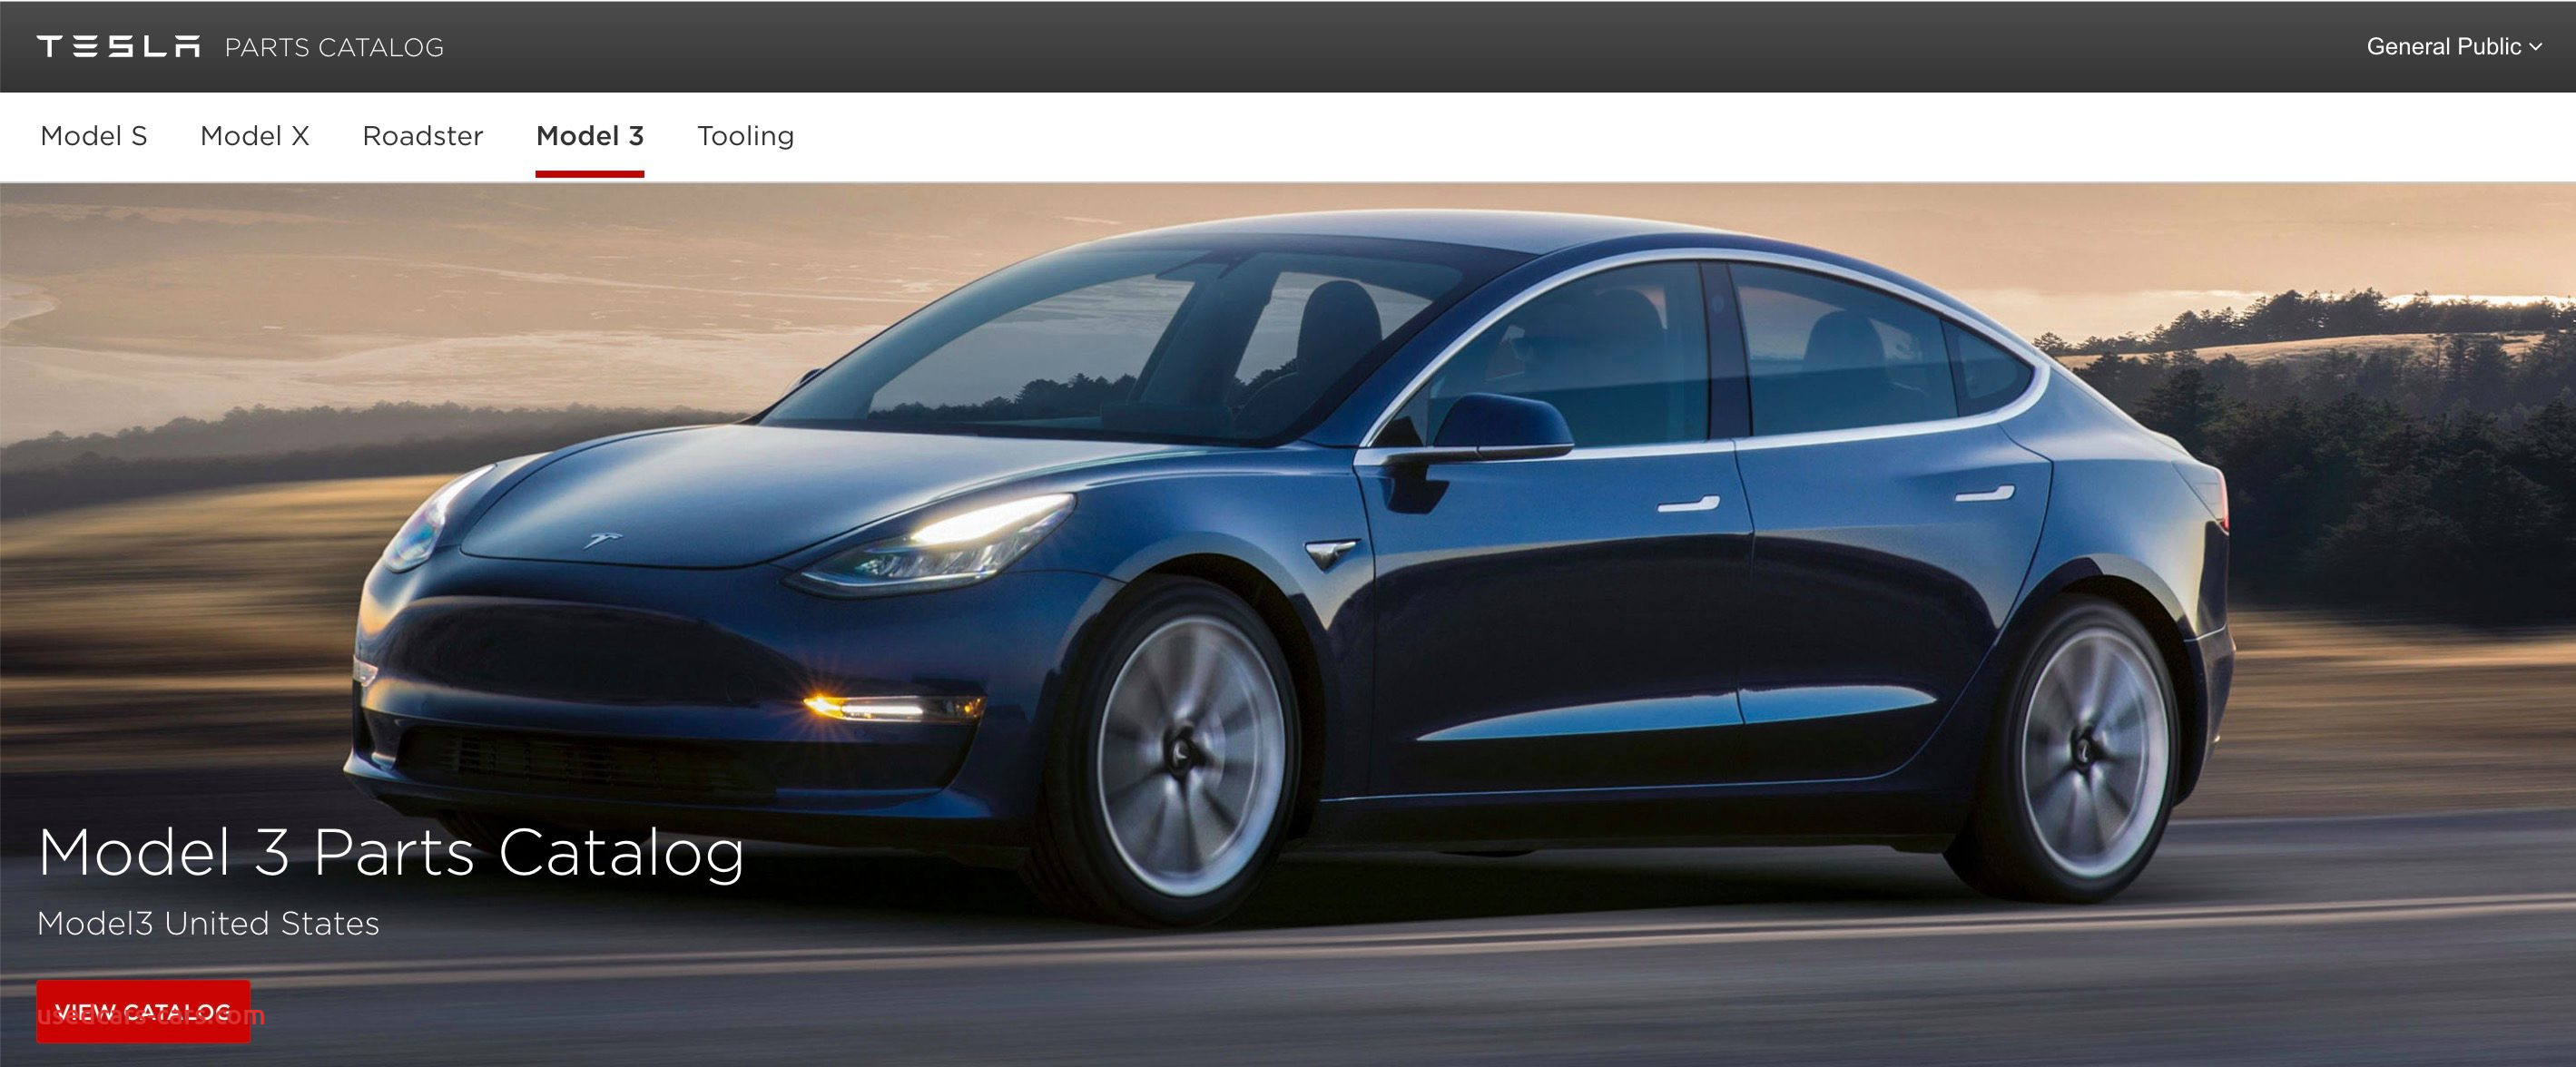 Tesla Cars Near Me New Tesla Releases Parts Catalog for ...